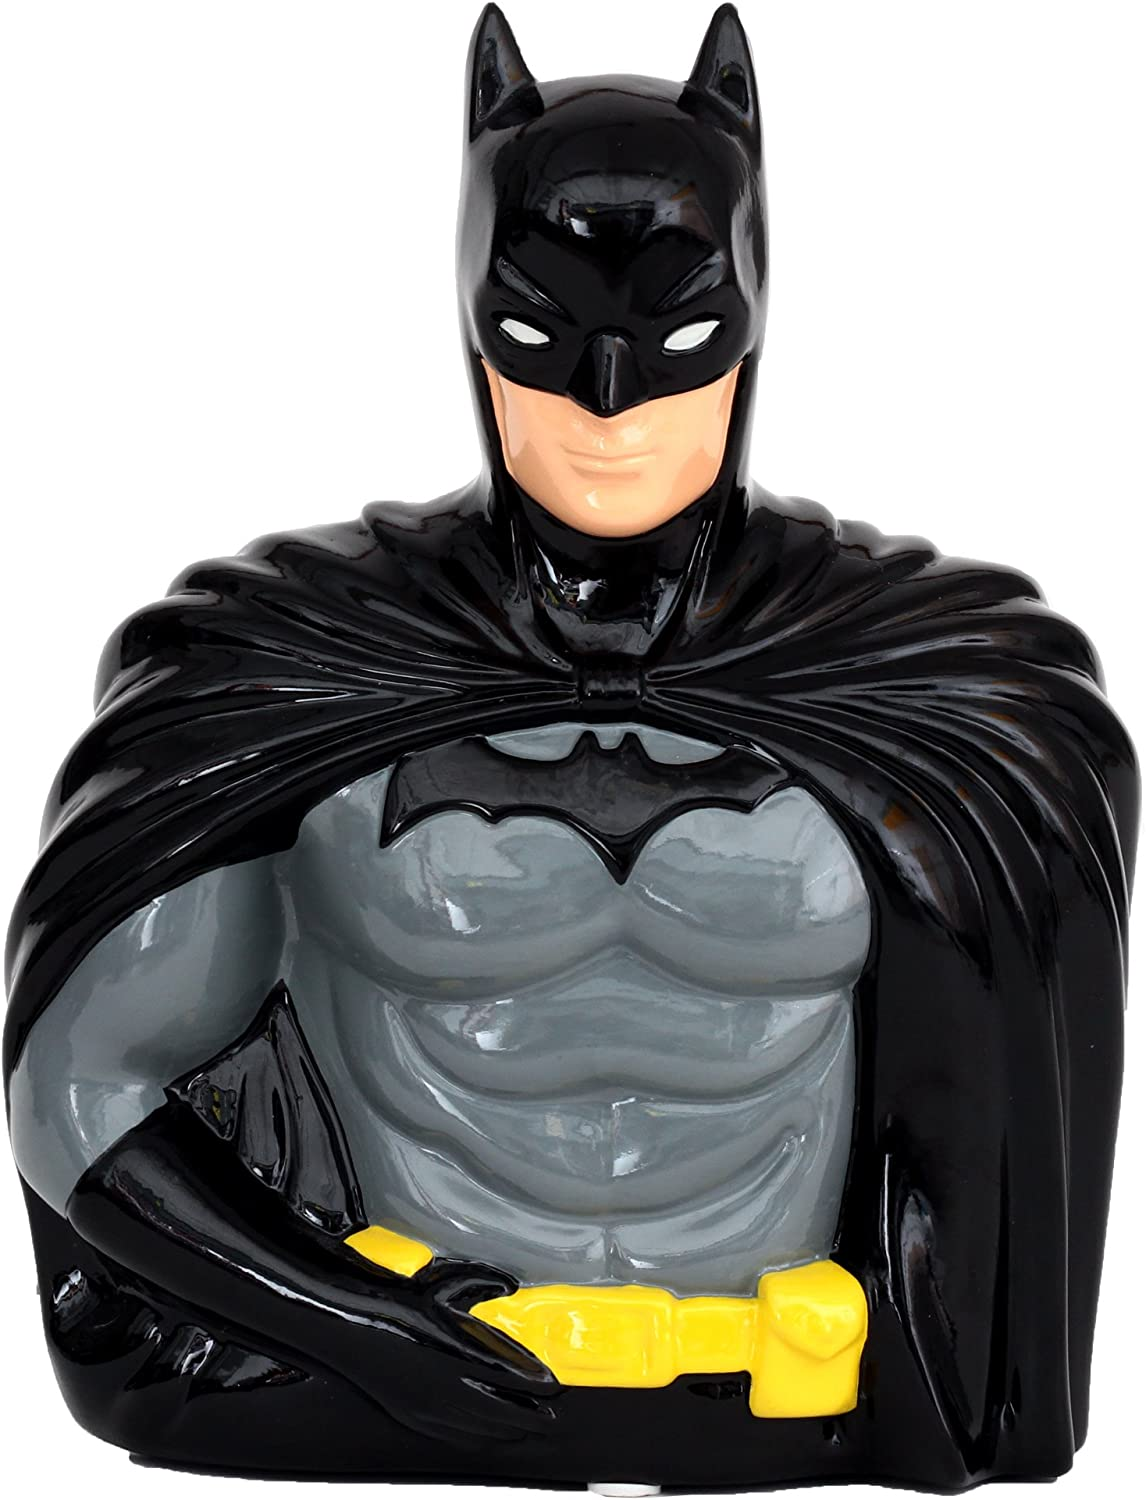 Official Brand New Batman Coin Bank in a Colored Box- One S